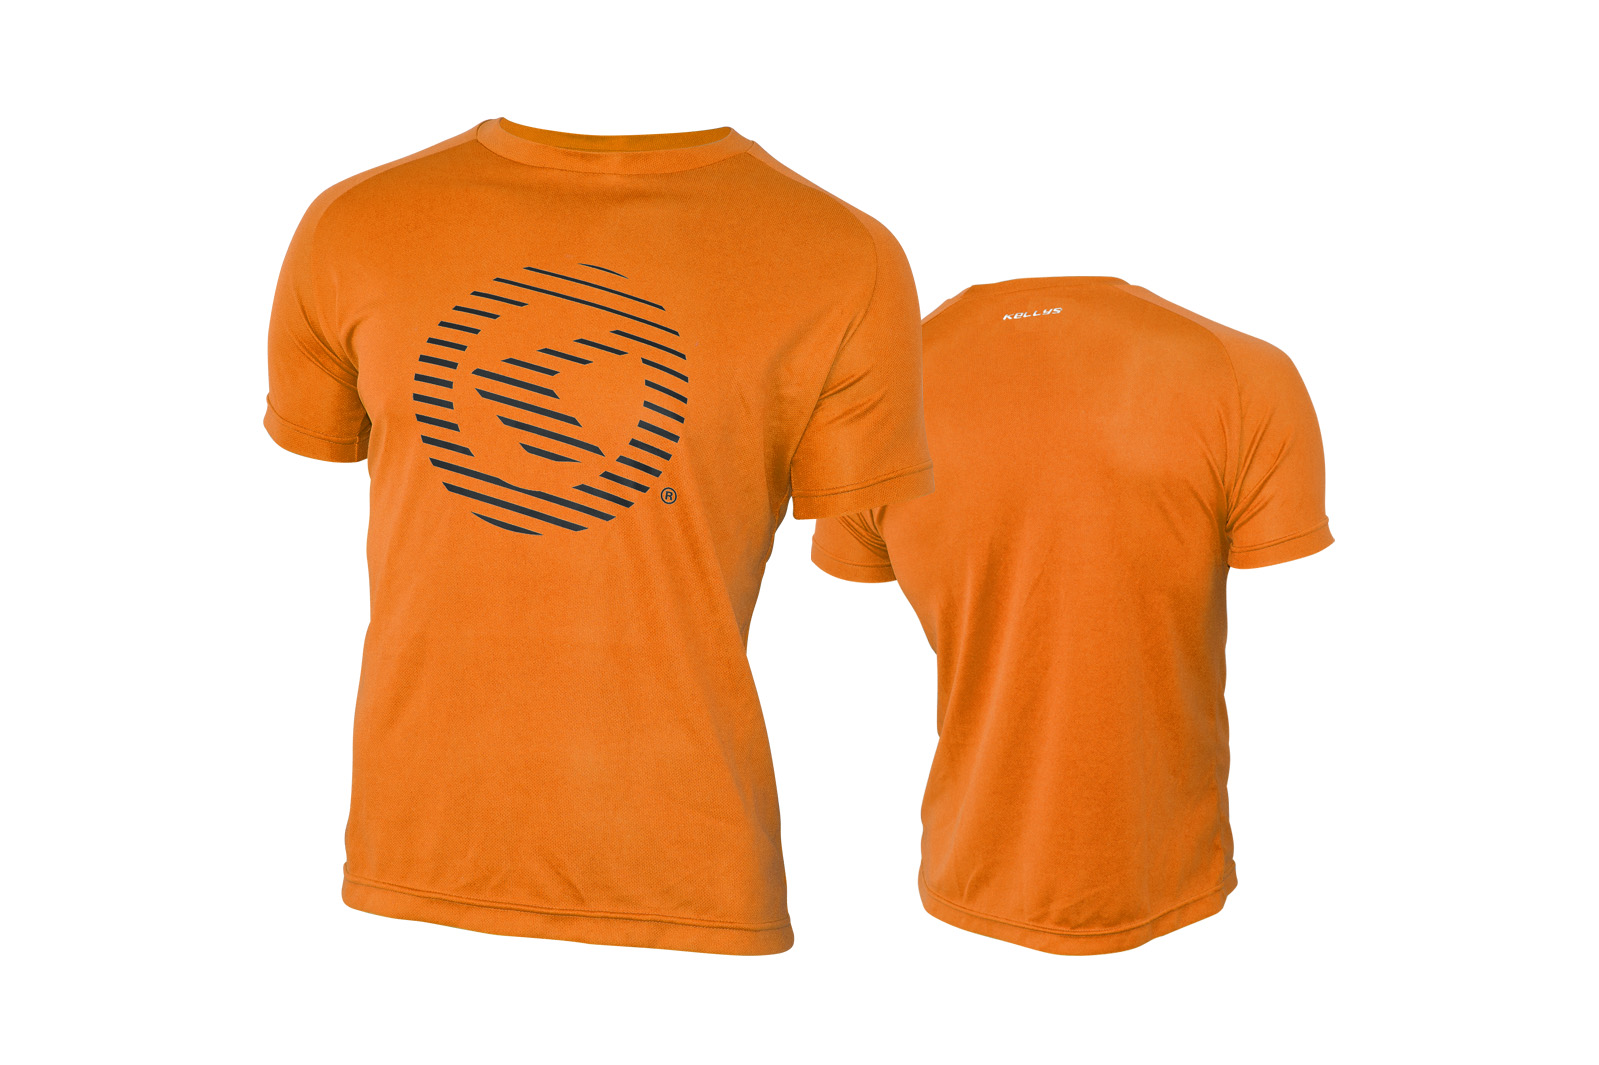 T-Shirt KELLYS ACTIVE orange - M - Mega Handelsgesellschaft